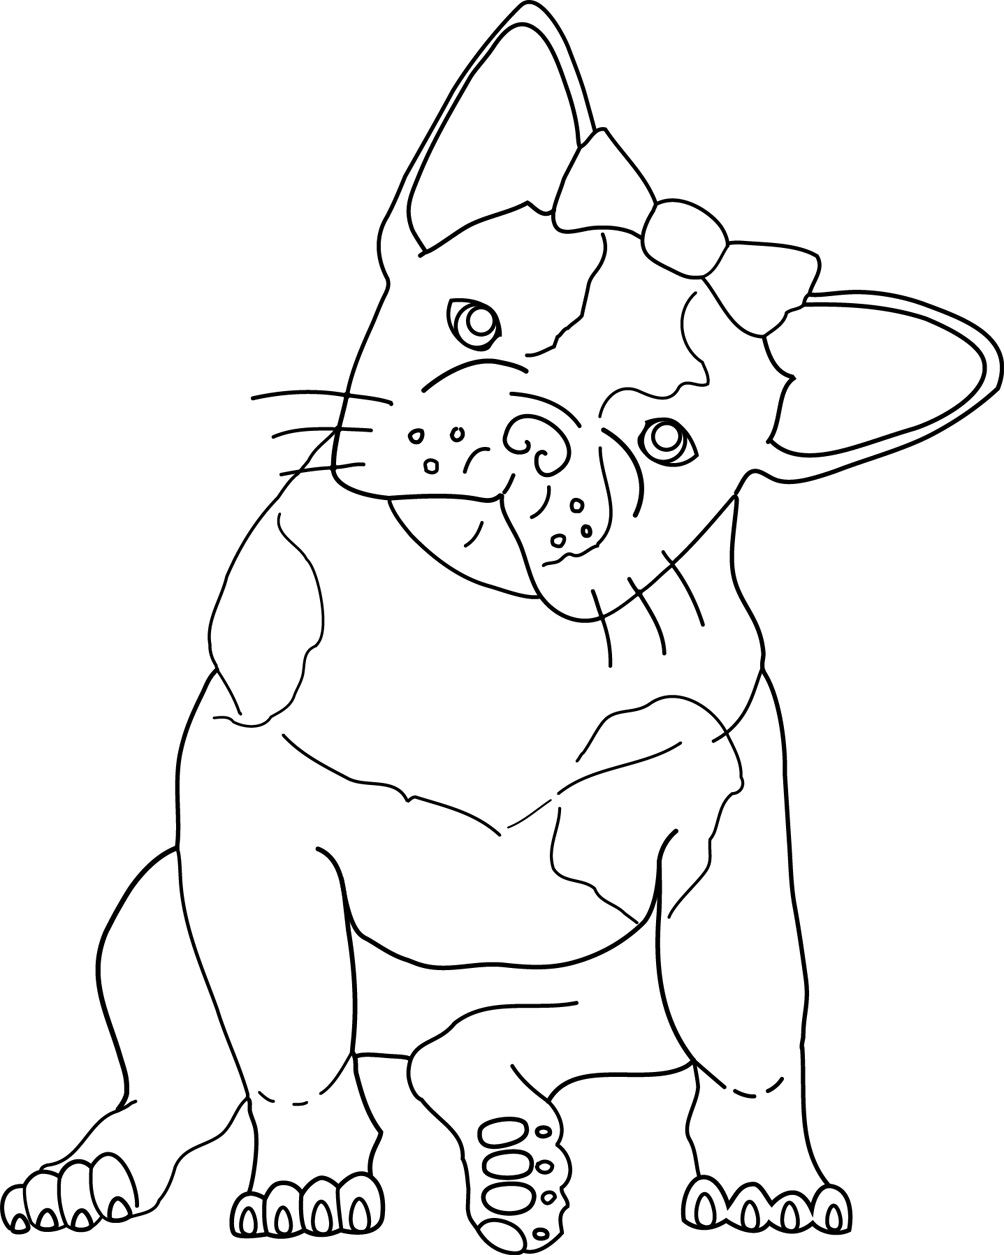 French Bulldog Line Drawing at GetDrawings.com | Free for personal ...